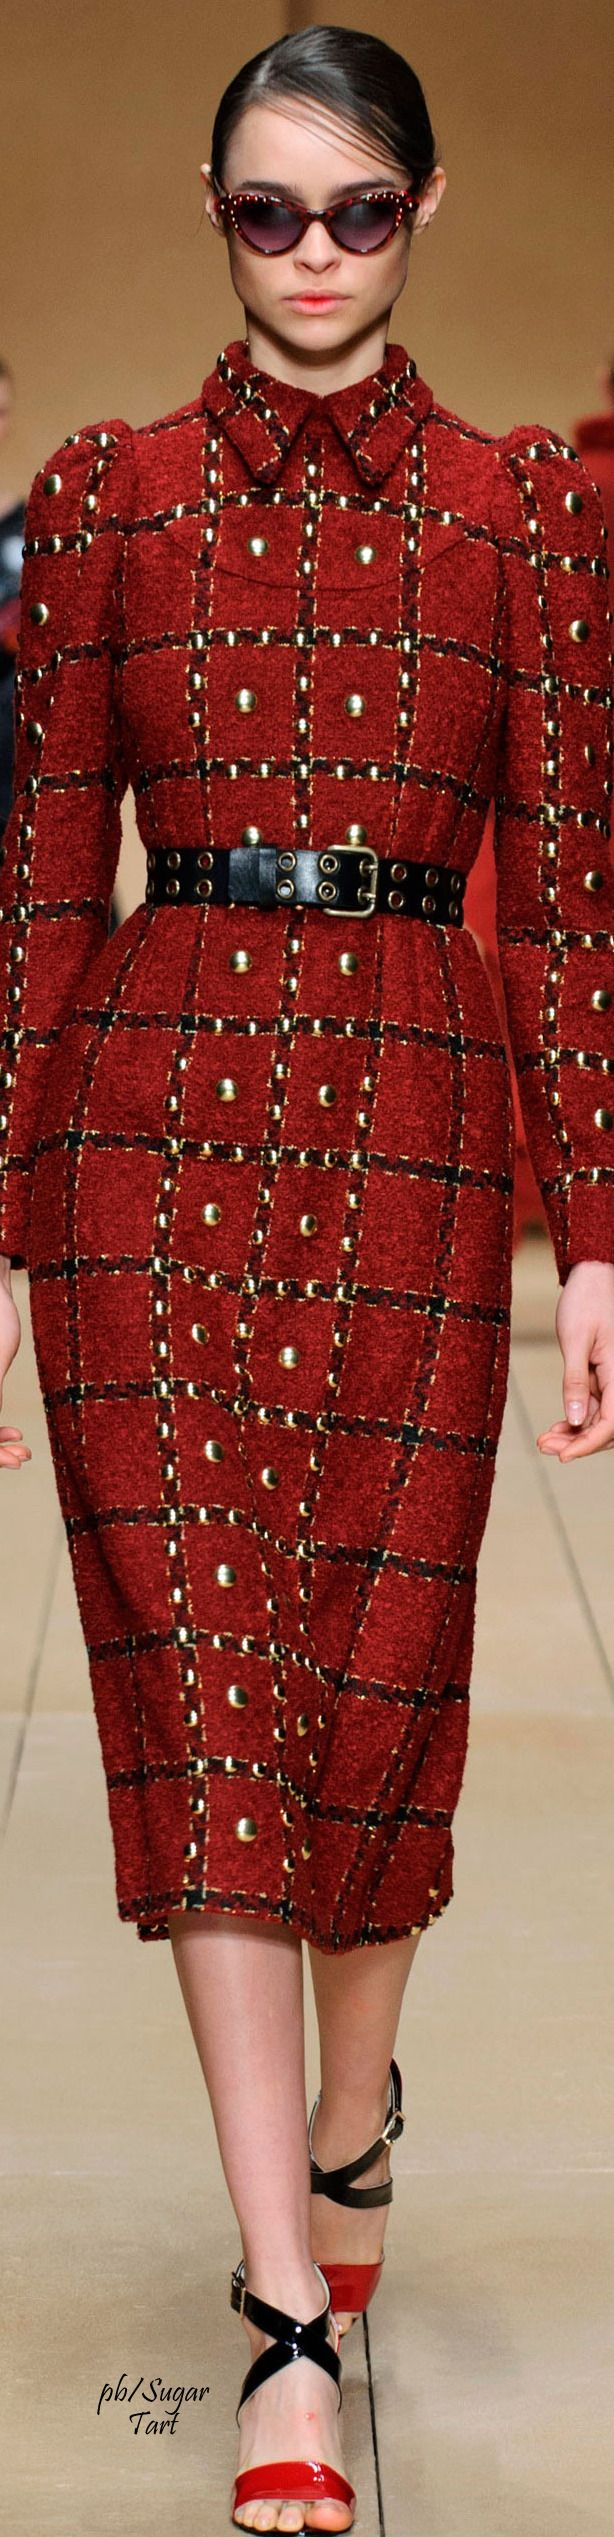 Laura Biagiotti Fall 2016 women fashion outfit clothing style apparel @roressclothes closet ideas